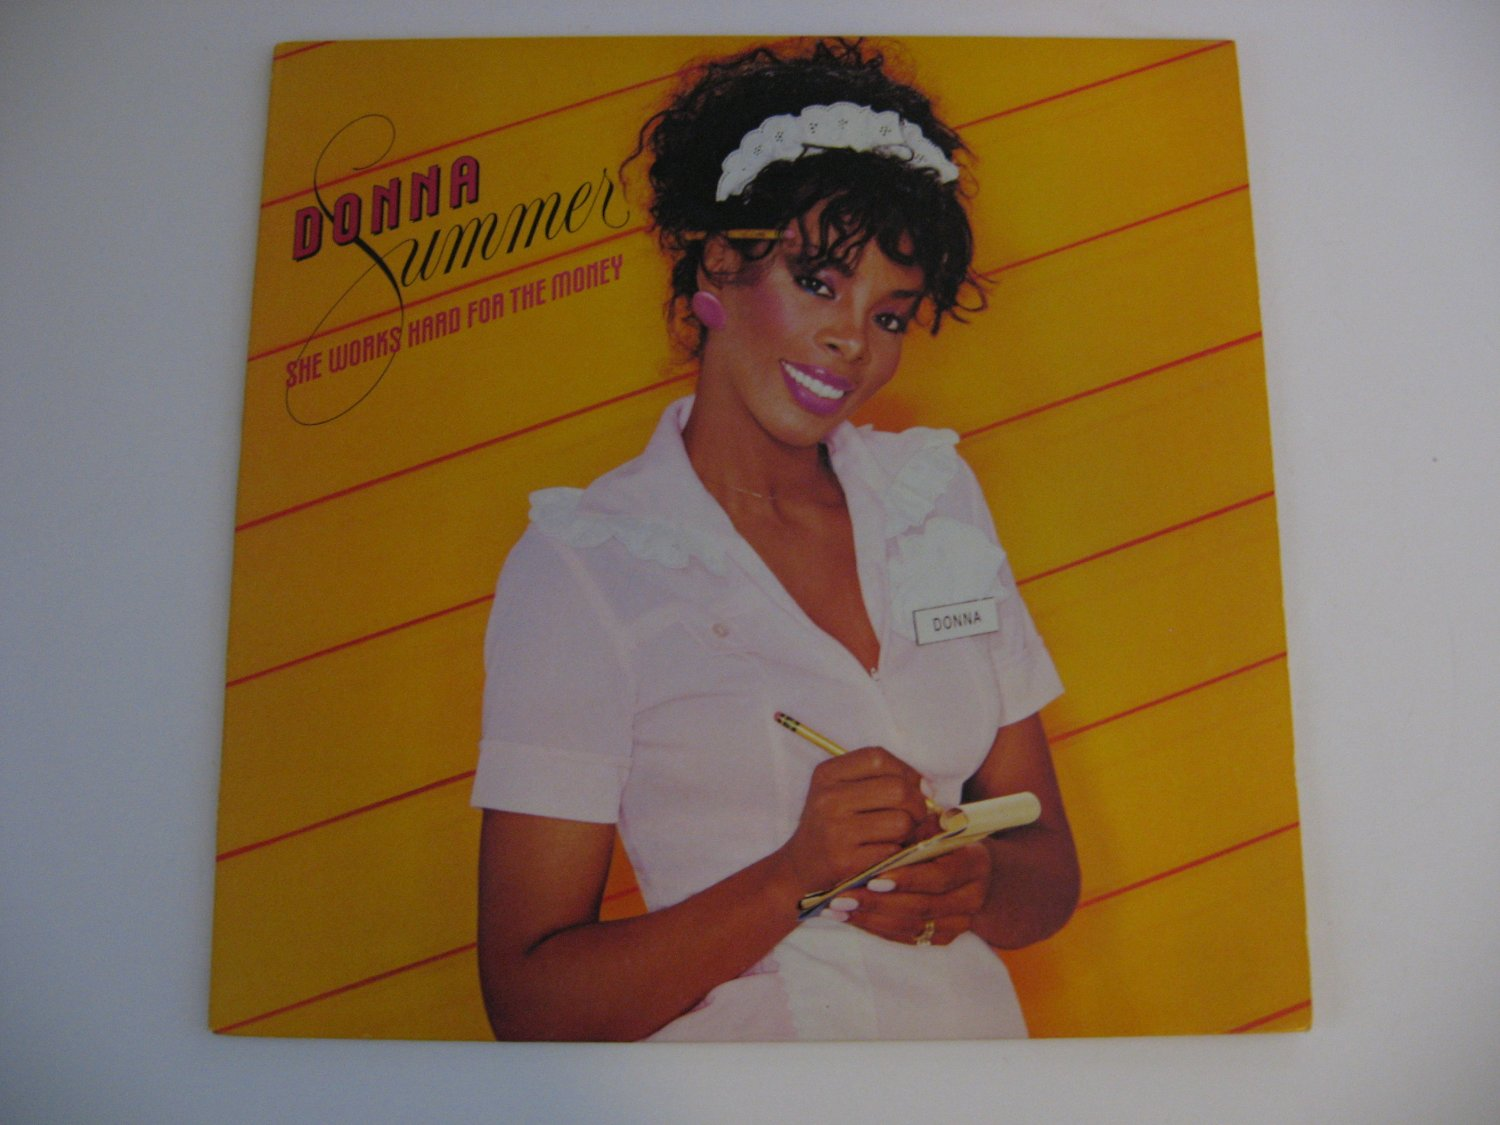 Donna Summer - She Works For The Money - 1983